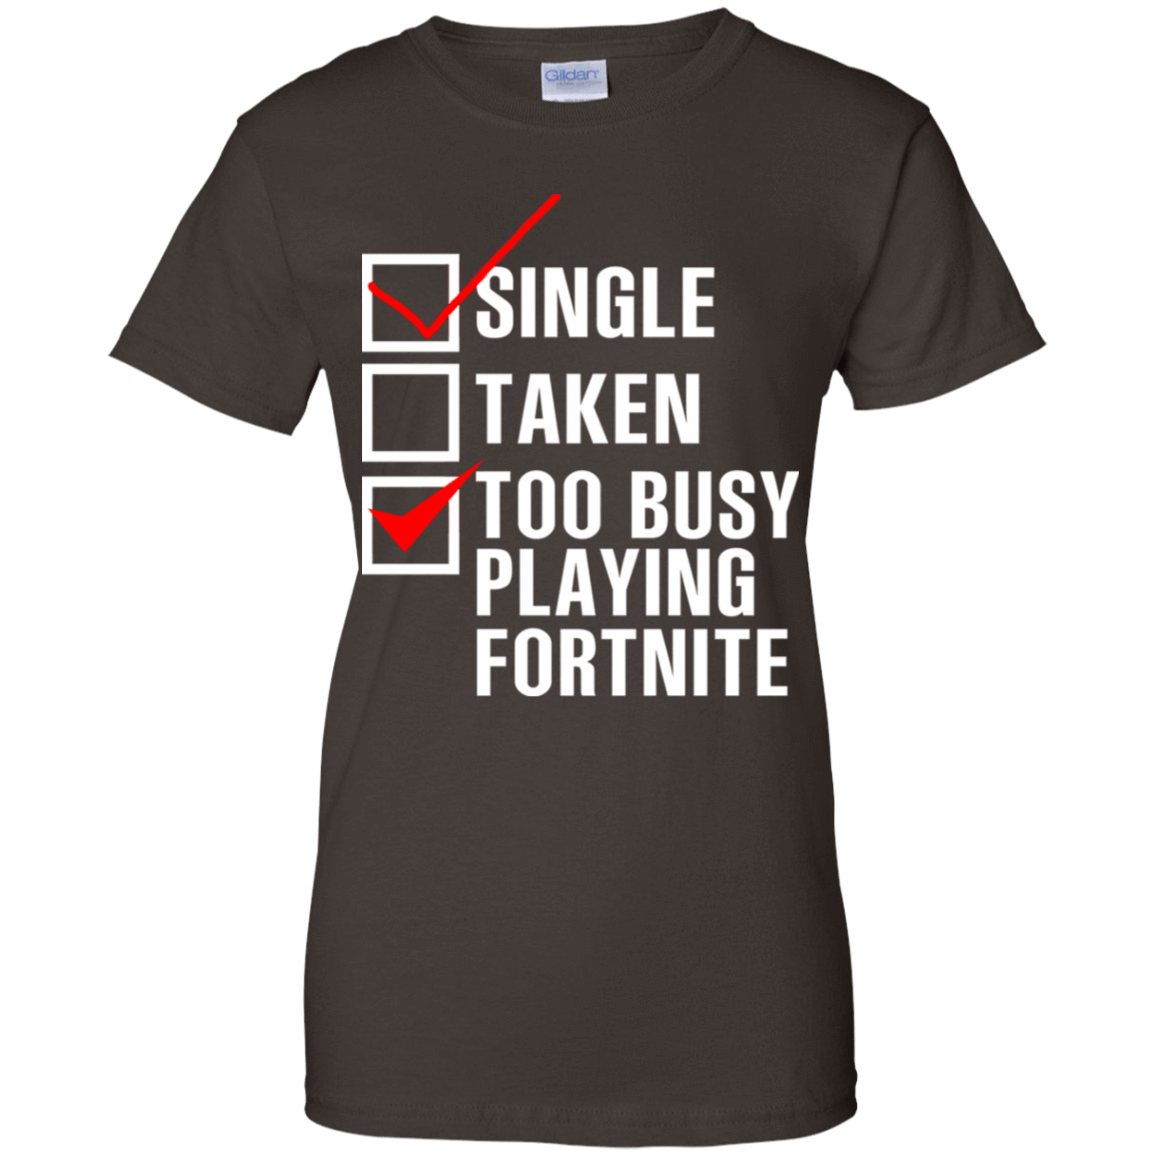 Single Taken Too Busy Playing Fortnite 939-9251-73563157-44702 - Tee Ript